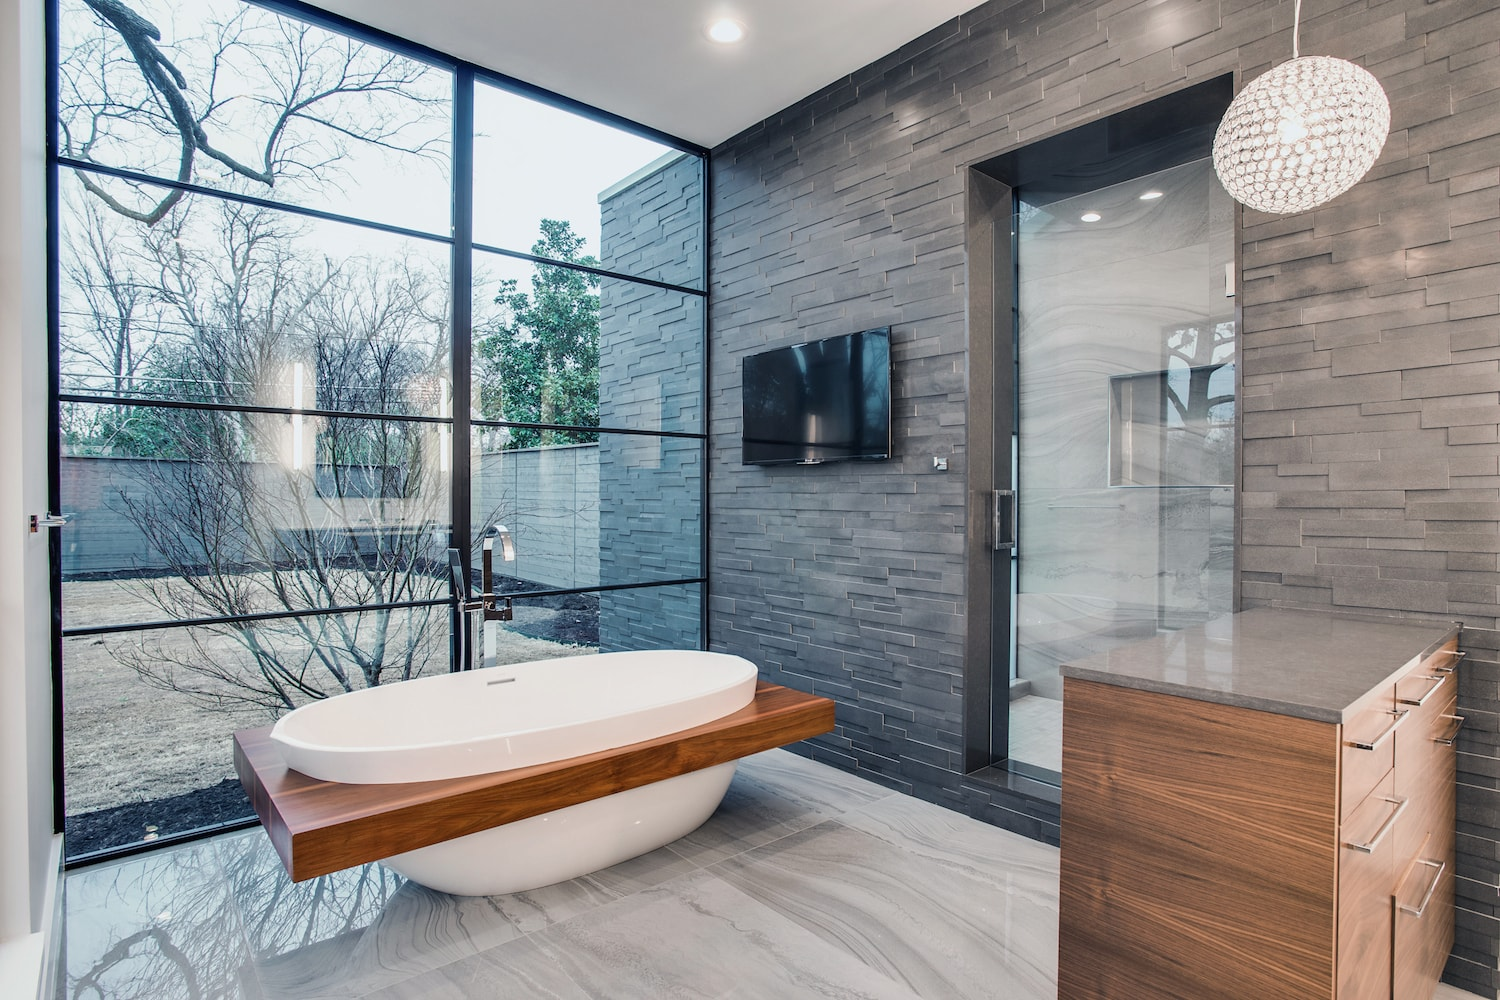 Norstone Ochre Slimline Rock Panels used on both the interior and exterior of a residential master bathroom